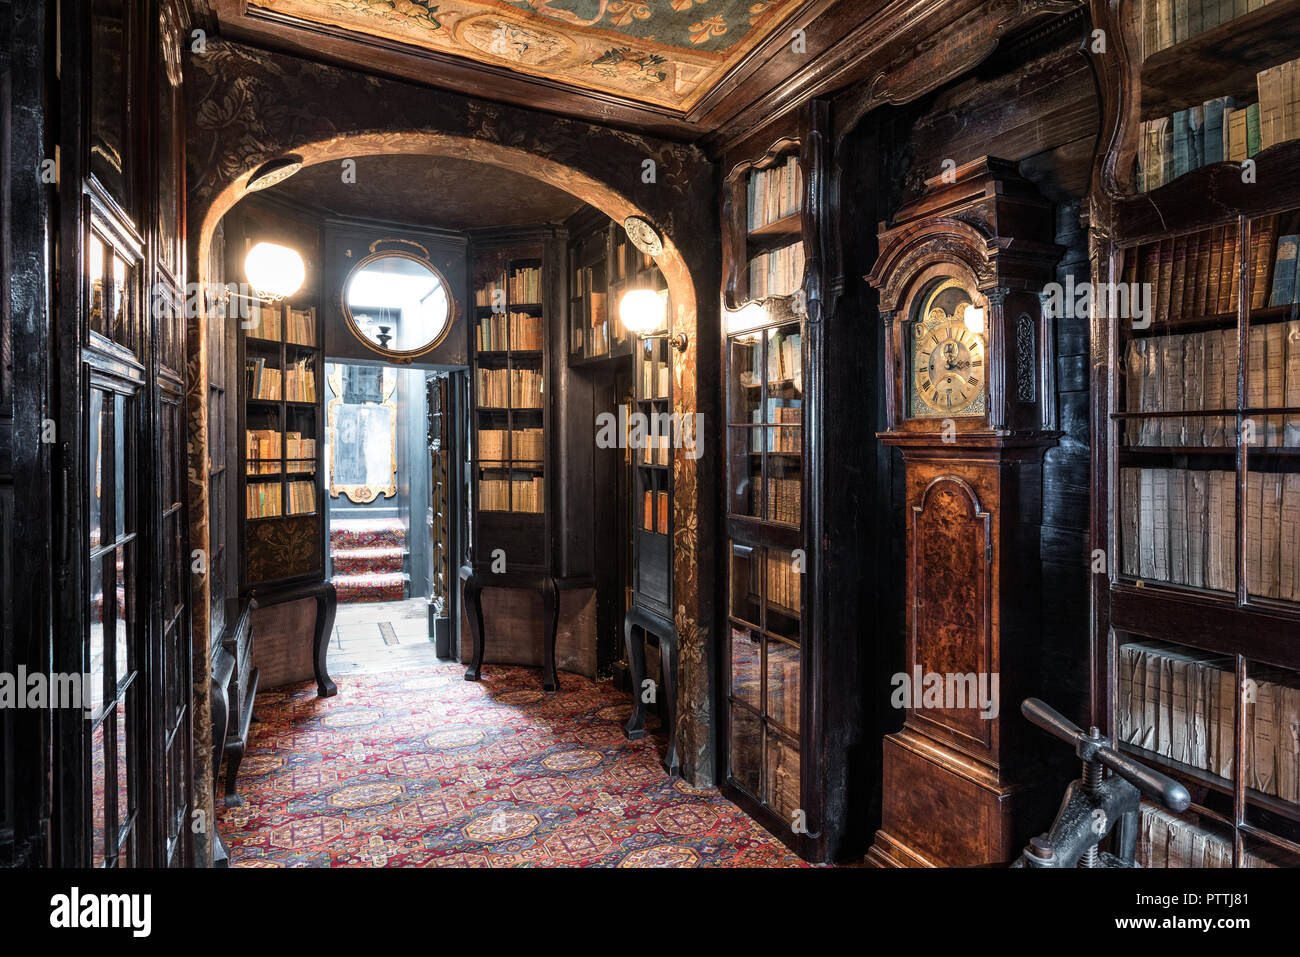 Oak gallery with bookcases and tapestery ceilings on upper floors of Hauteville House - Stock Photo